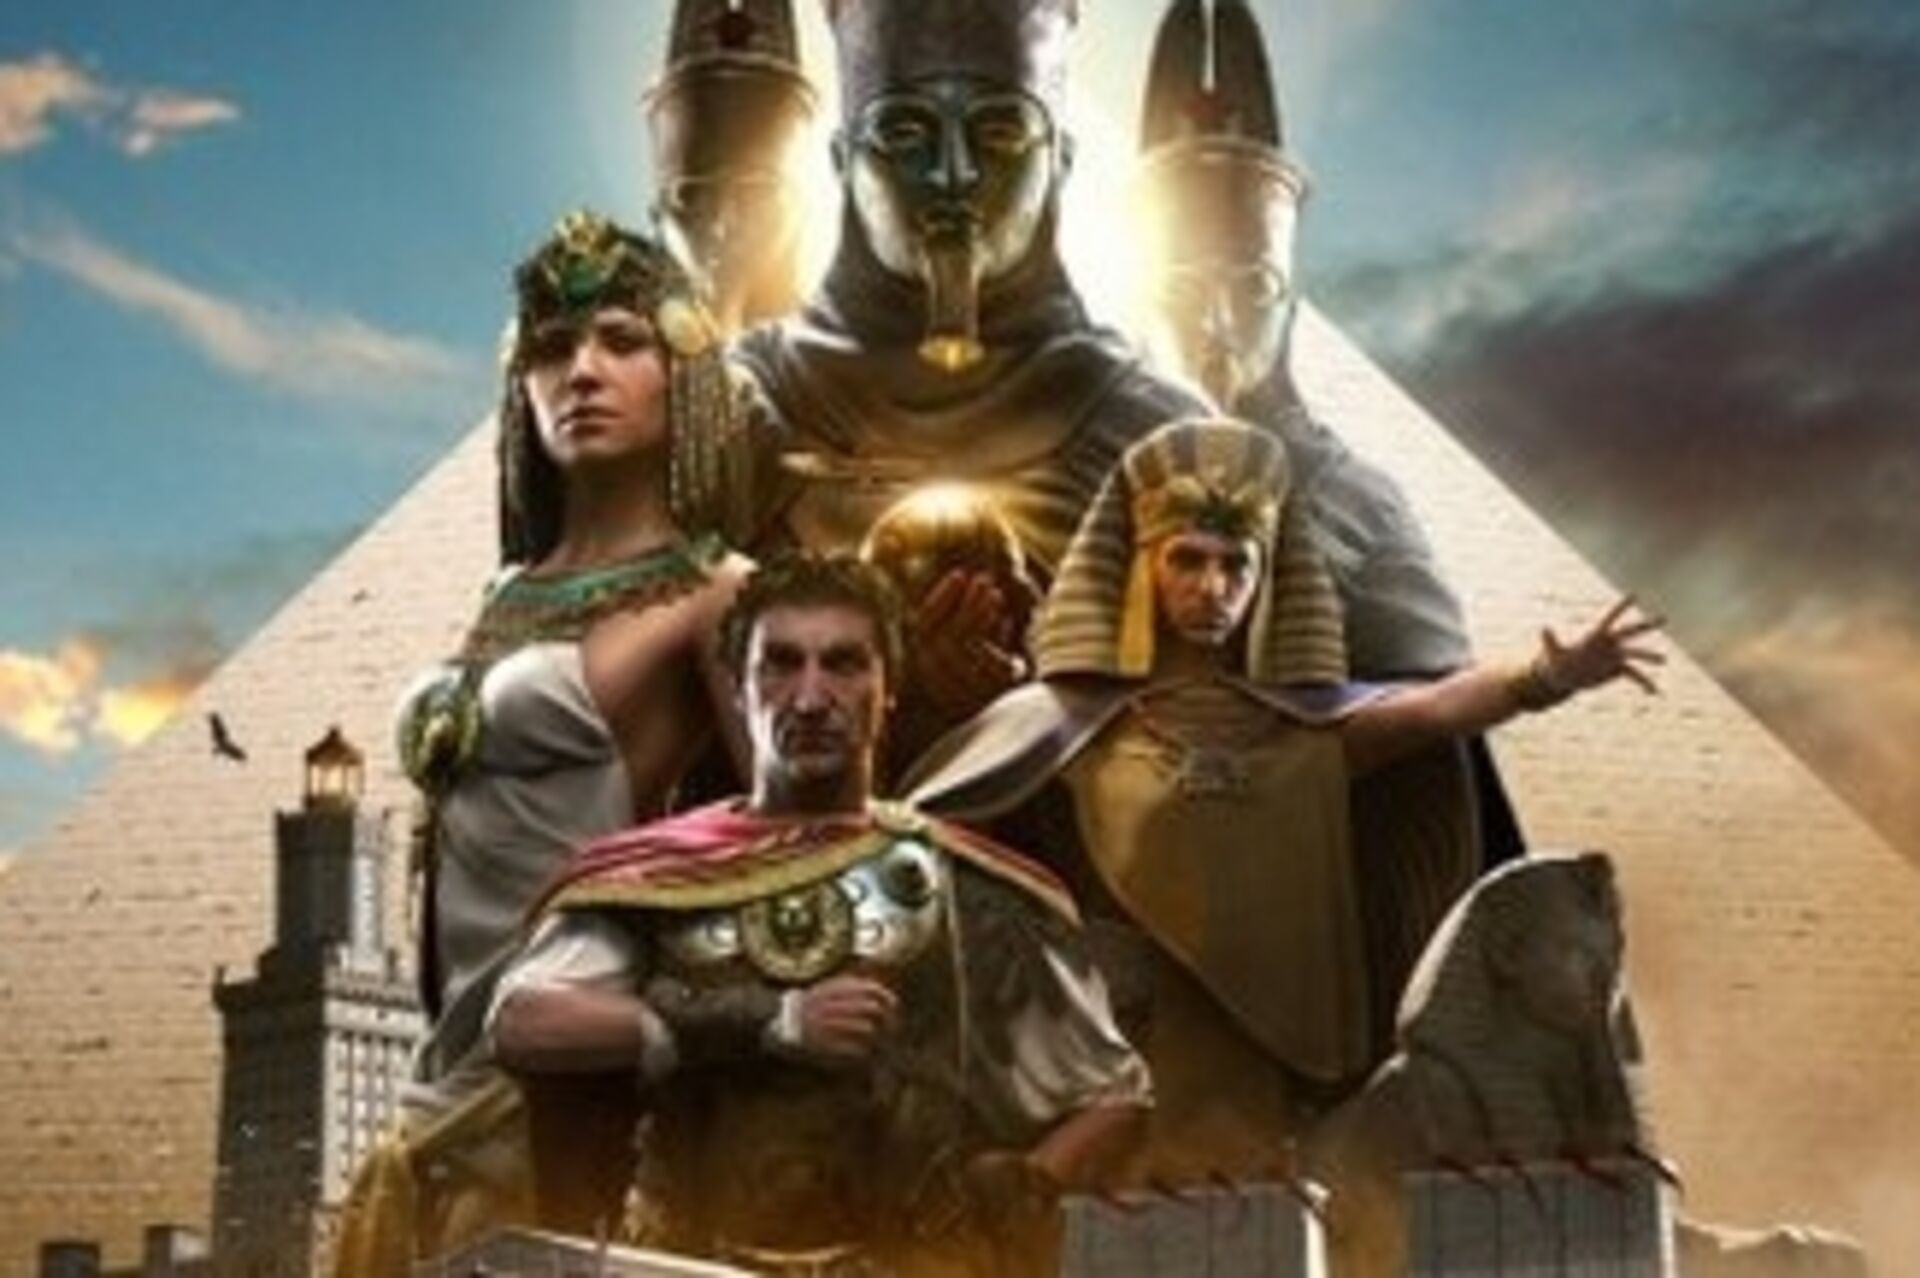 Assassin S Creed Origins Adds New Game Plus Today With A Secret New Reward Eurogamer Net